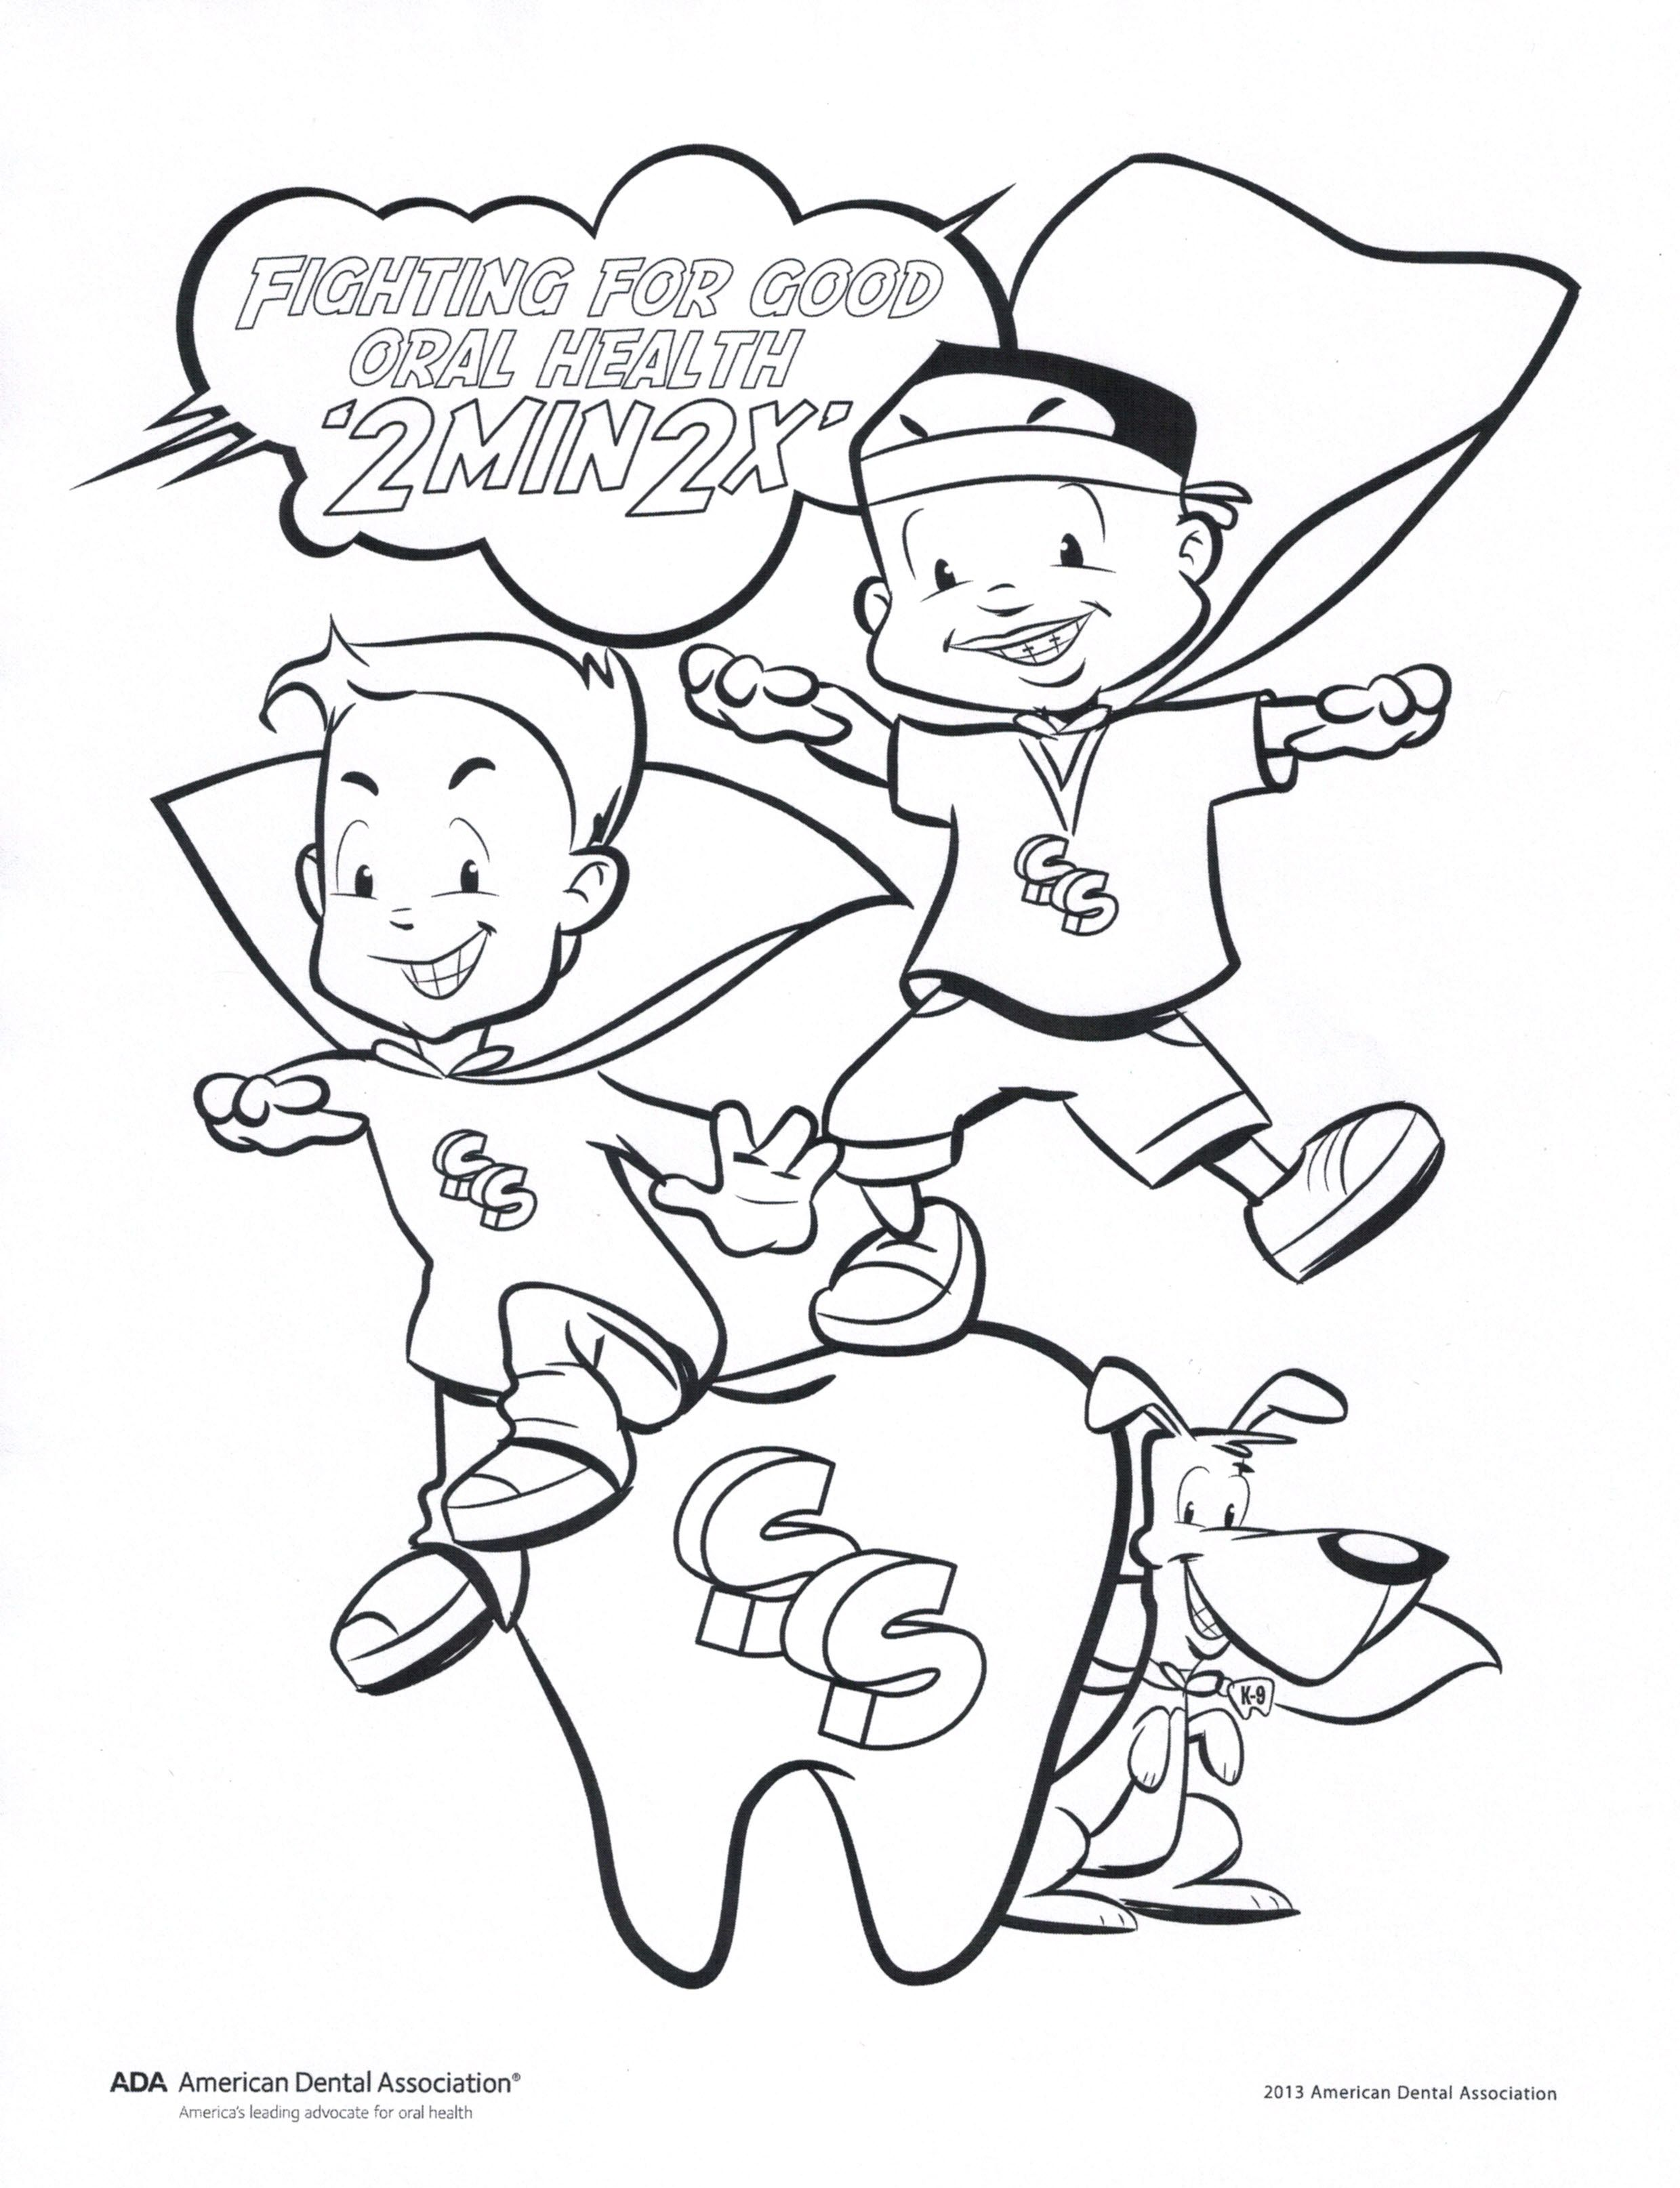 Colouring in pages dental - Fight For Good Oral Health Coloring Page